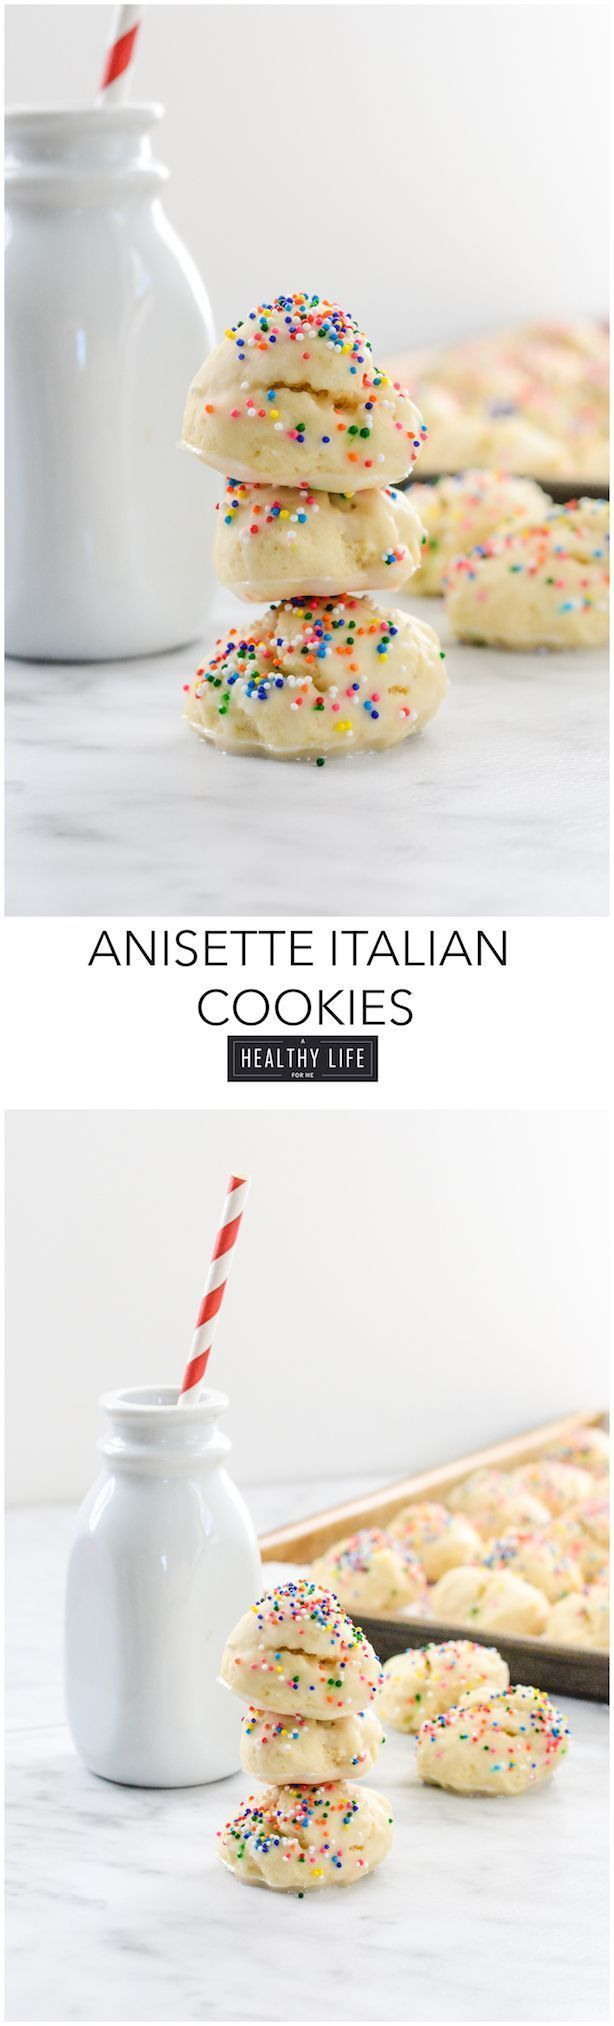 Anisette Italian Cookies   A Healthy Life For Me Recipes on ...